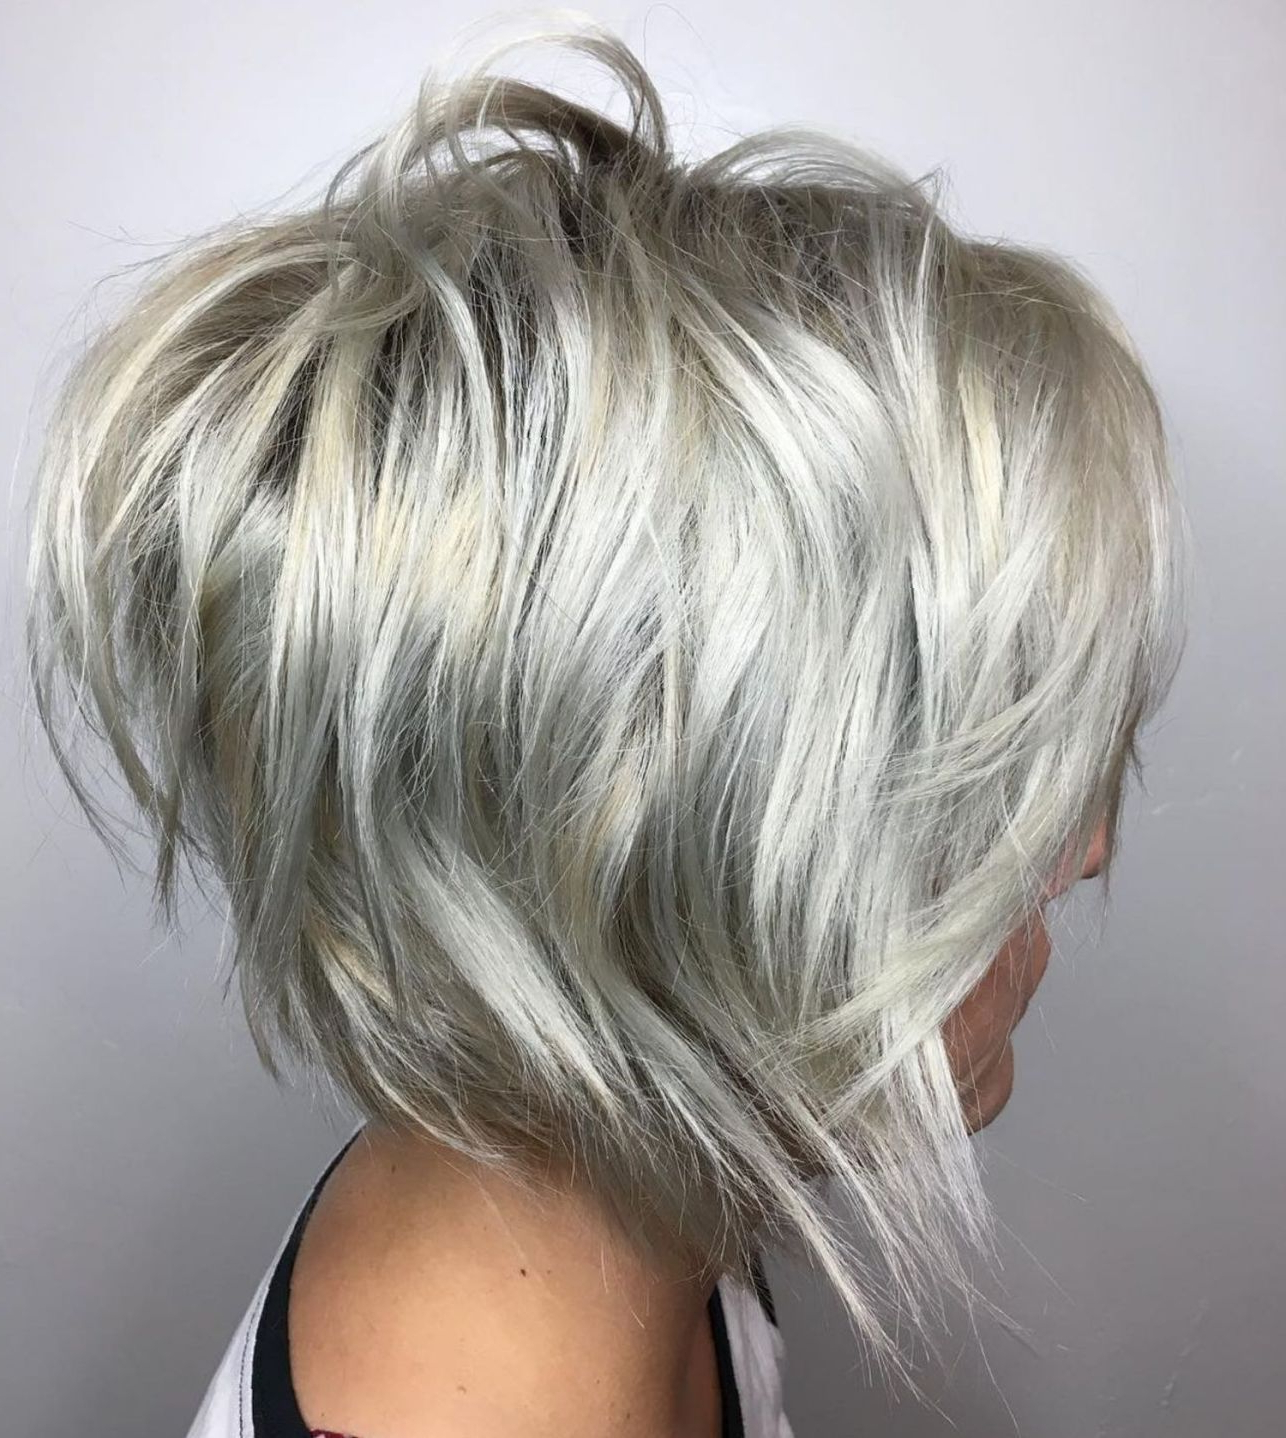 60 Short Shag Hairstyles That You Simply Can't Miss (View 4 of 20)